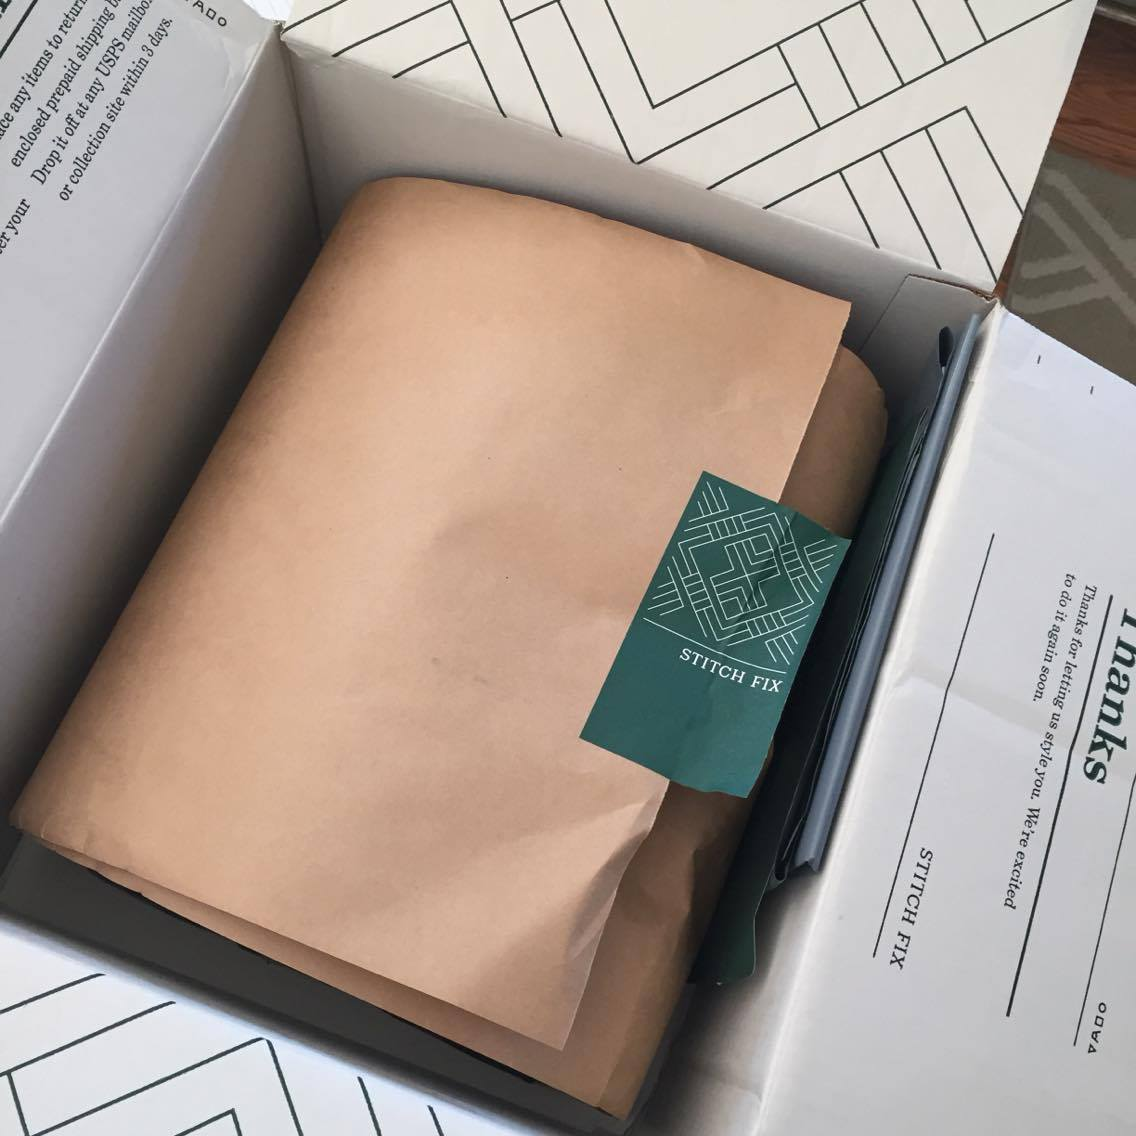 Update your Stitch Fix account with price preferences, style desires and more to get a good Stitch Fix for Men box like this one!